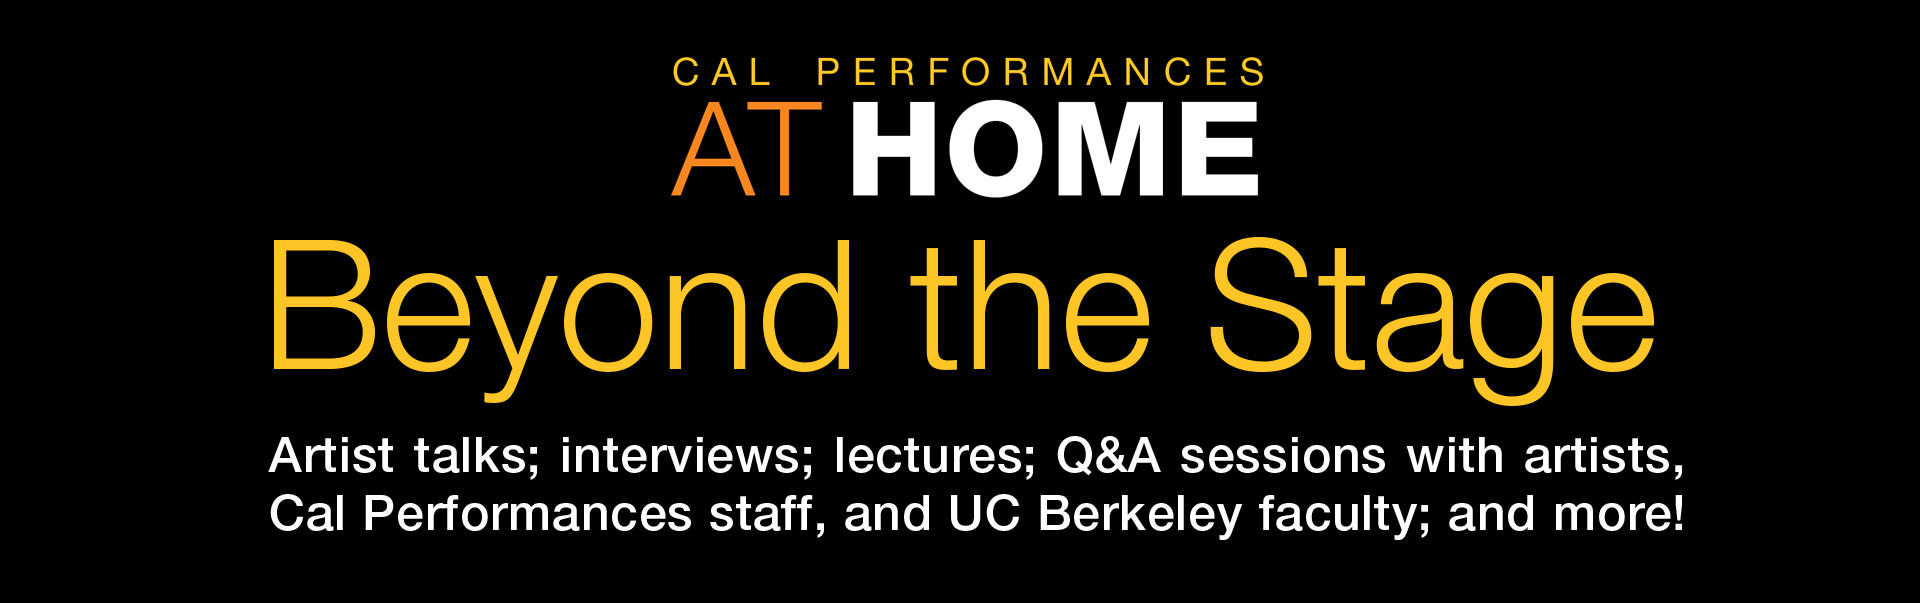 Cal Performances at Home Beyond the Stage